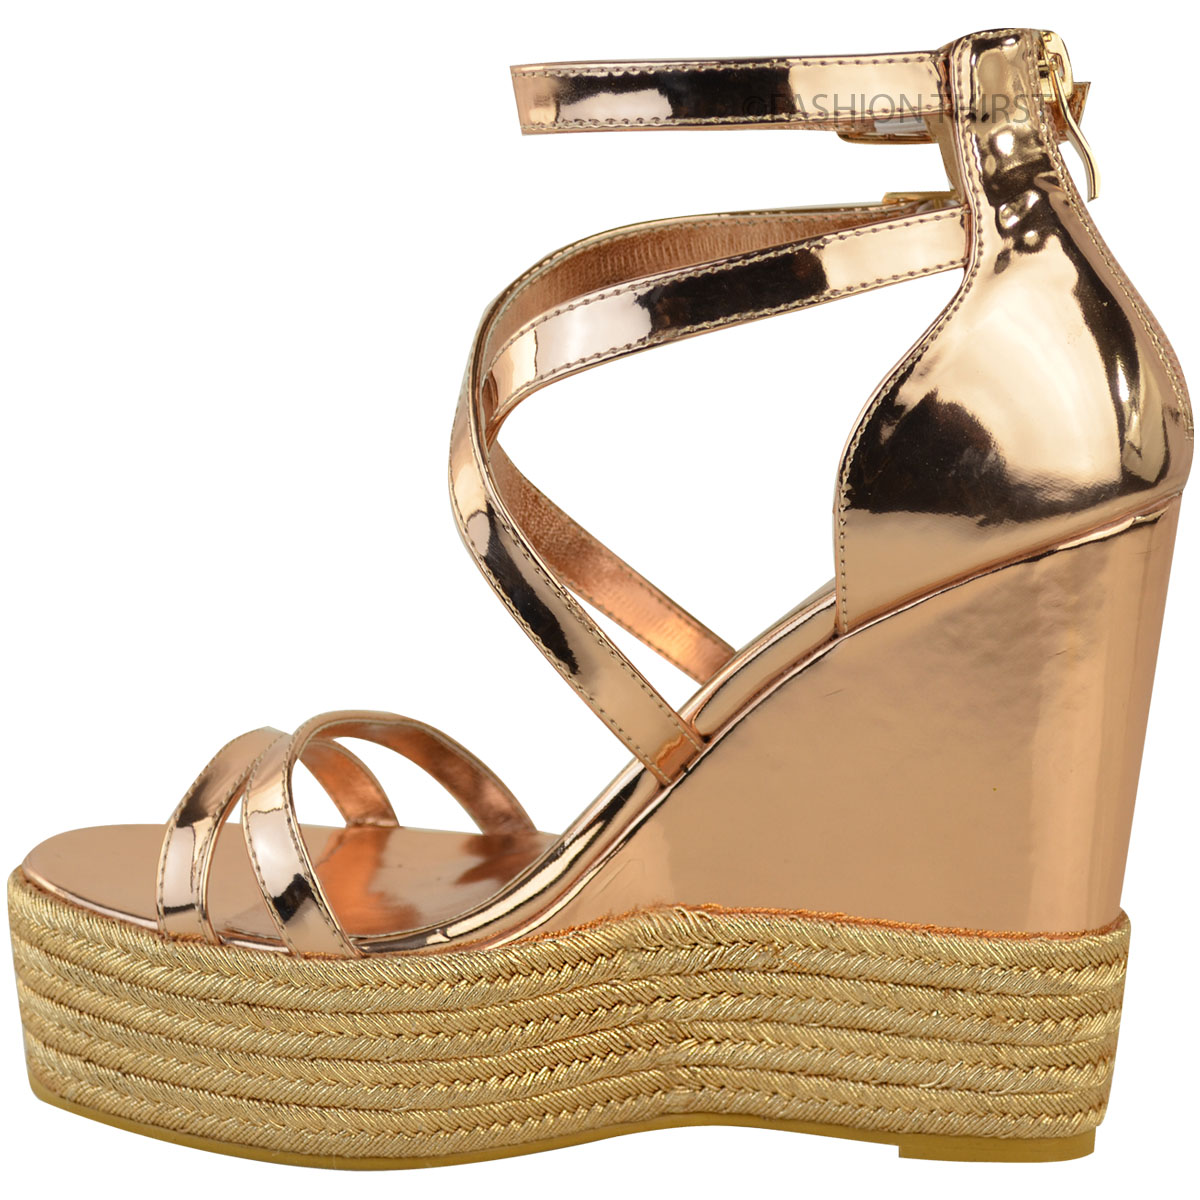 New-Womens-Ladies-Wedge-Espadrille-Sandals-Strappy-Rose-Gold-Summer-Shoes-Size thumbnail 5